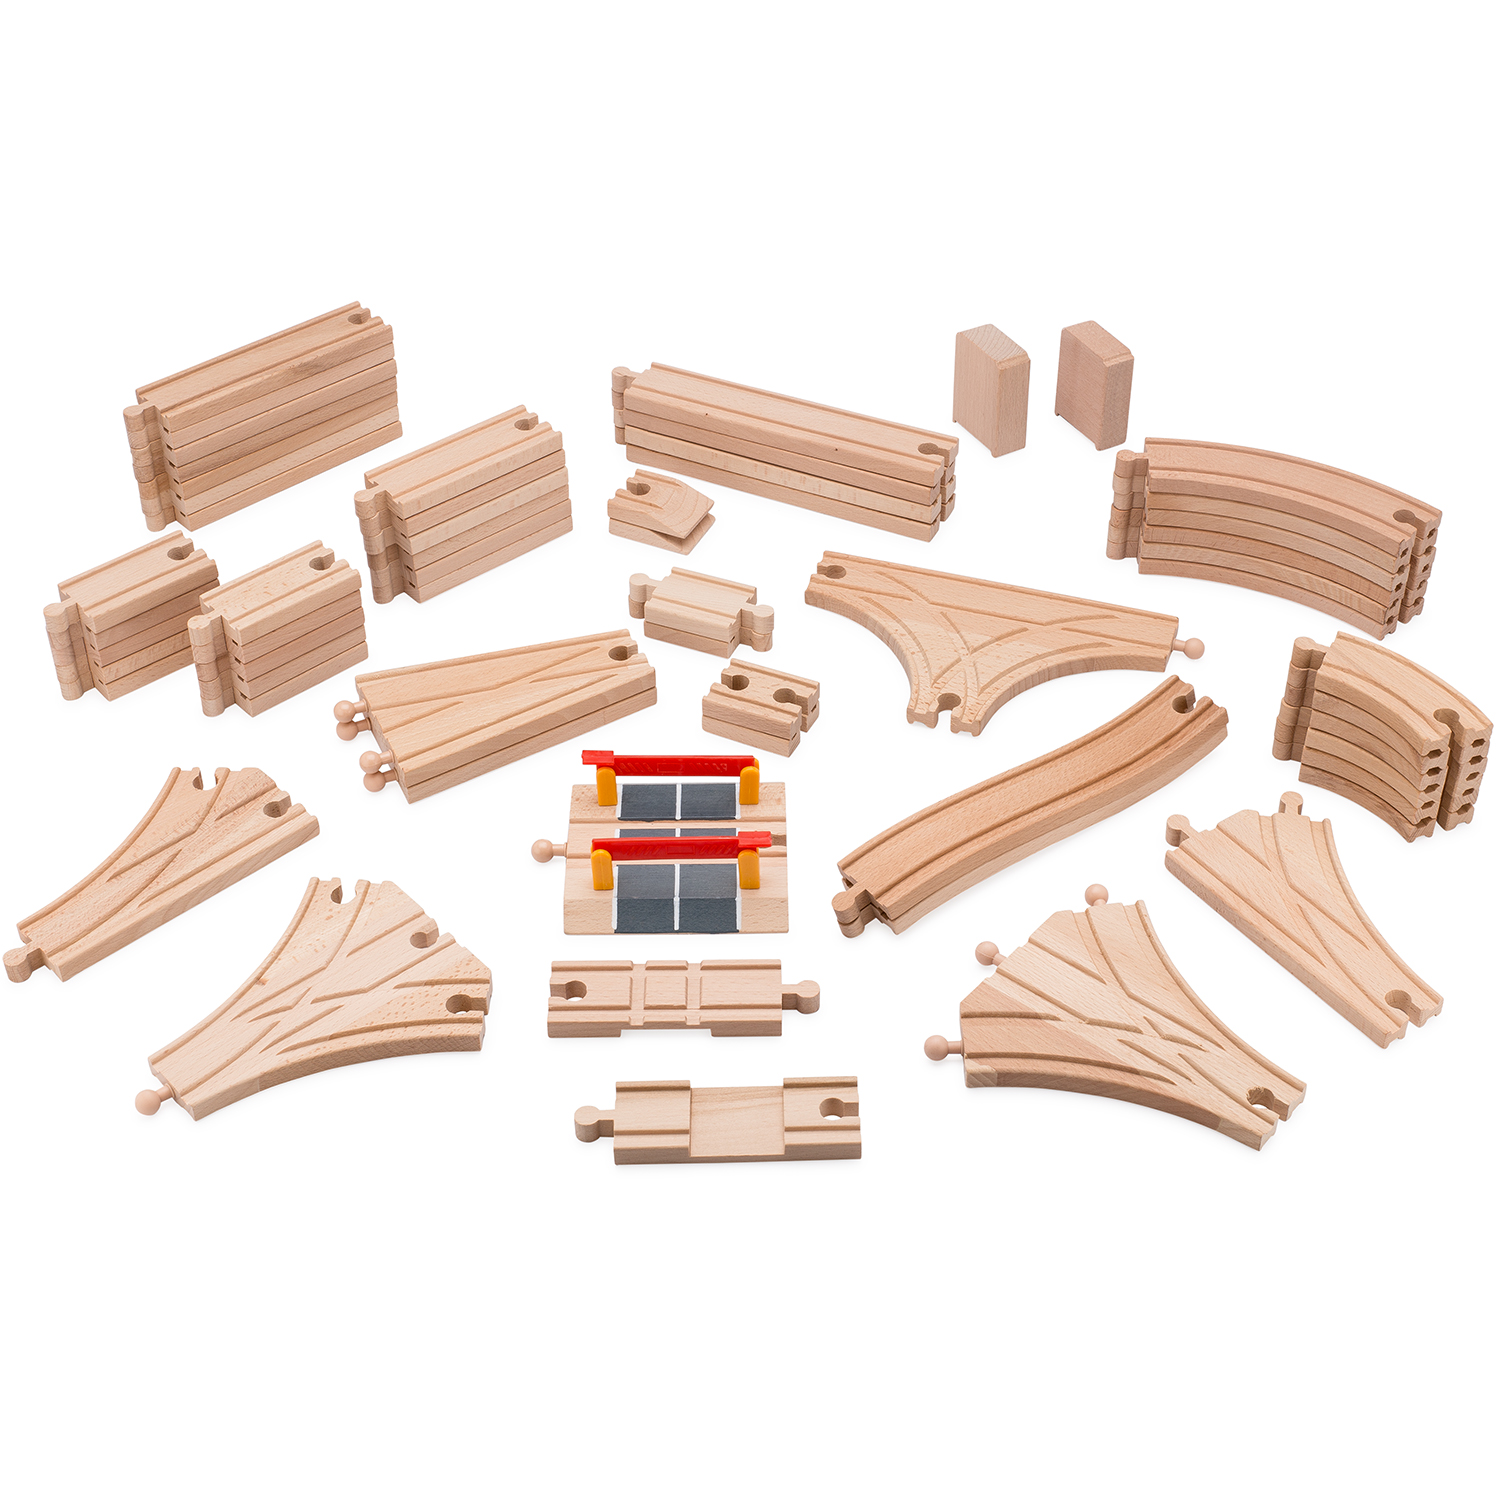 playbees wooden train track toy set 59 pieces compatible w brio thomas. Black Bedroom Furniture Sets. Home Design Ideas